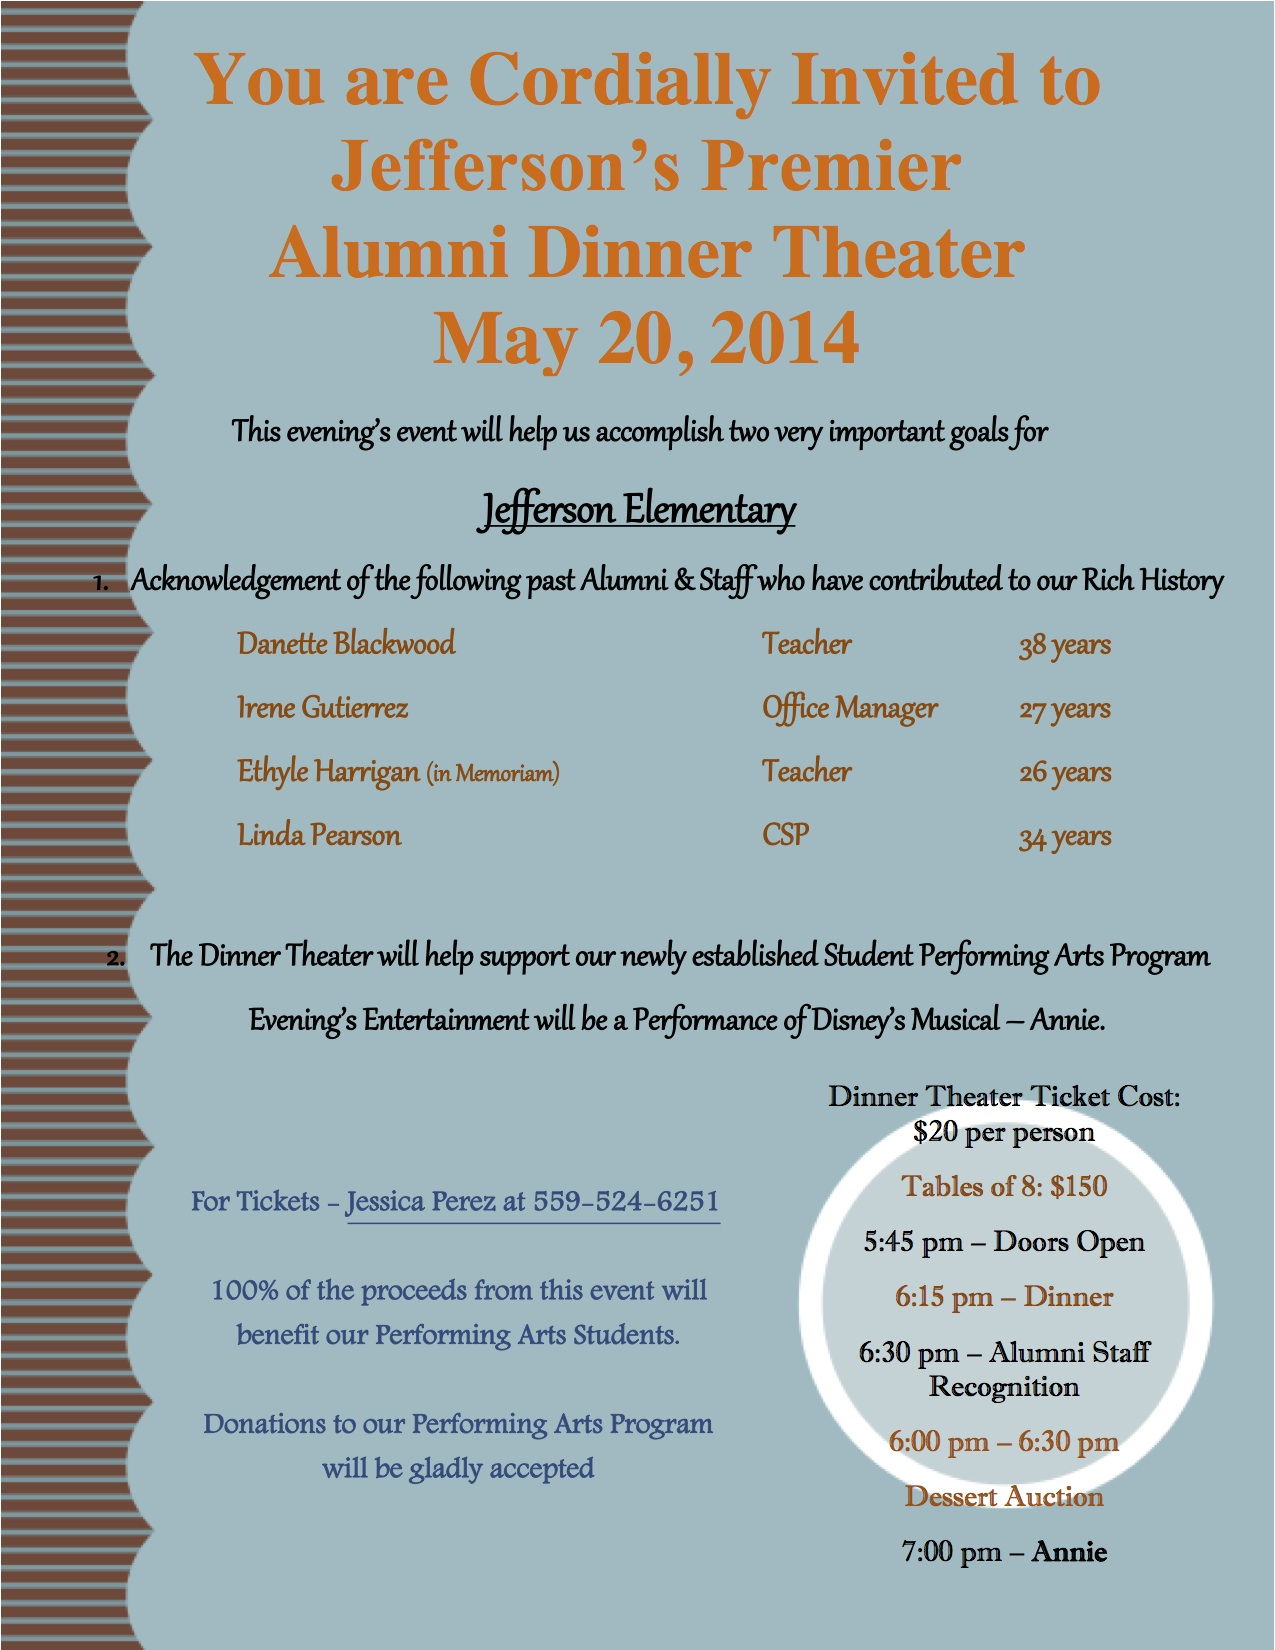 Jefferson Alumni Dinner Invitation copy The Sanger Scene